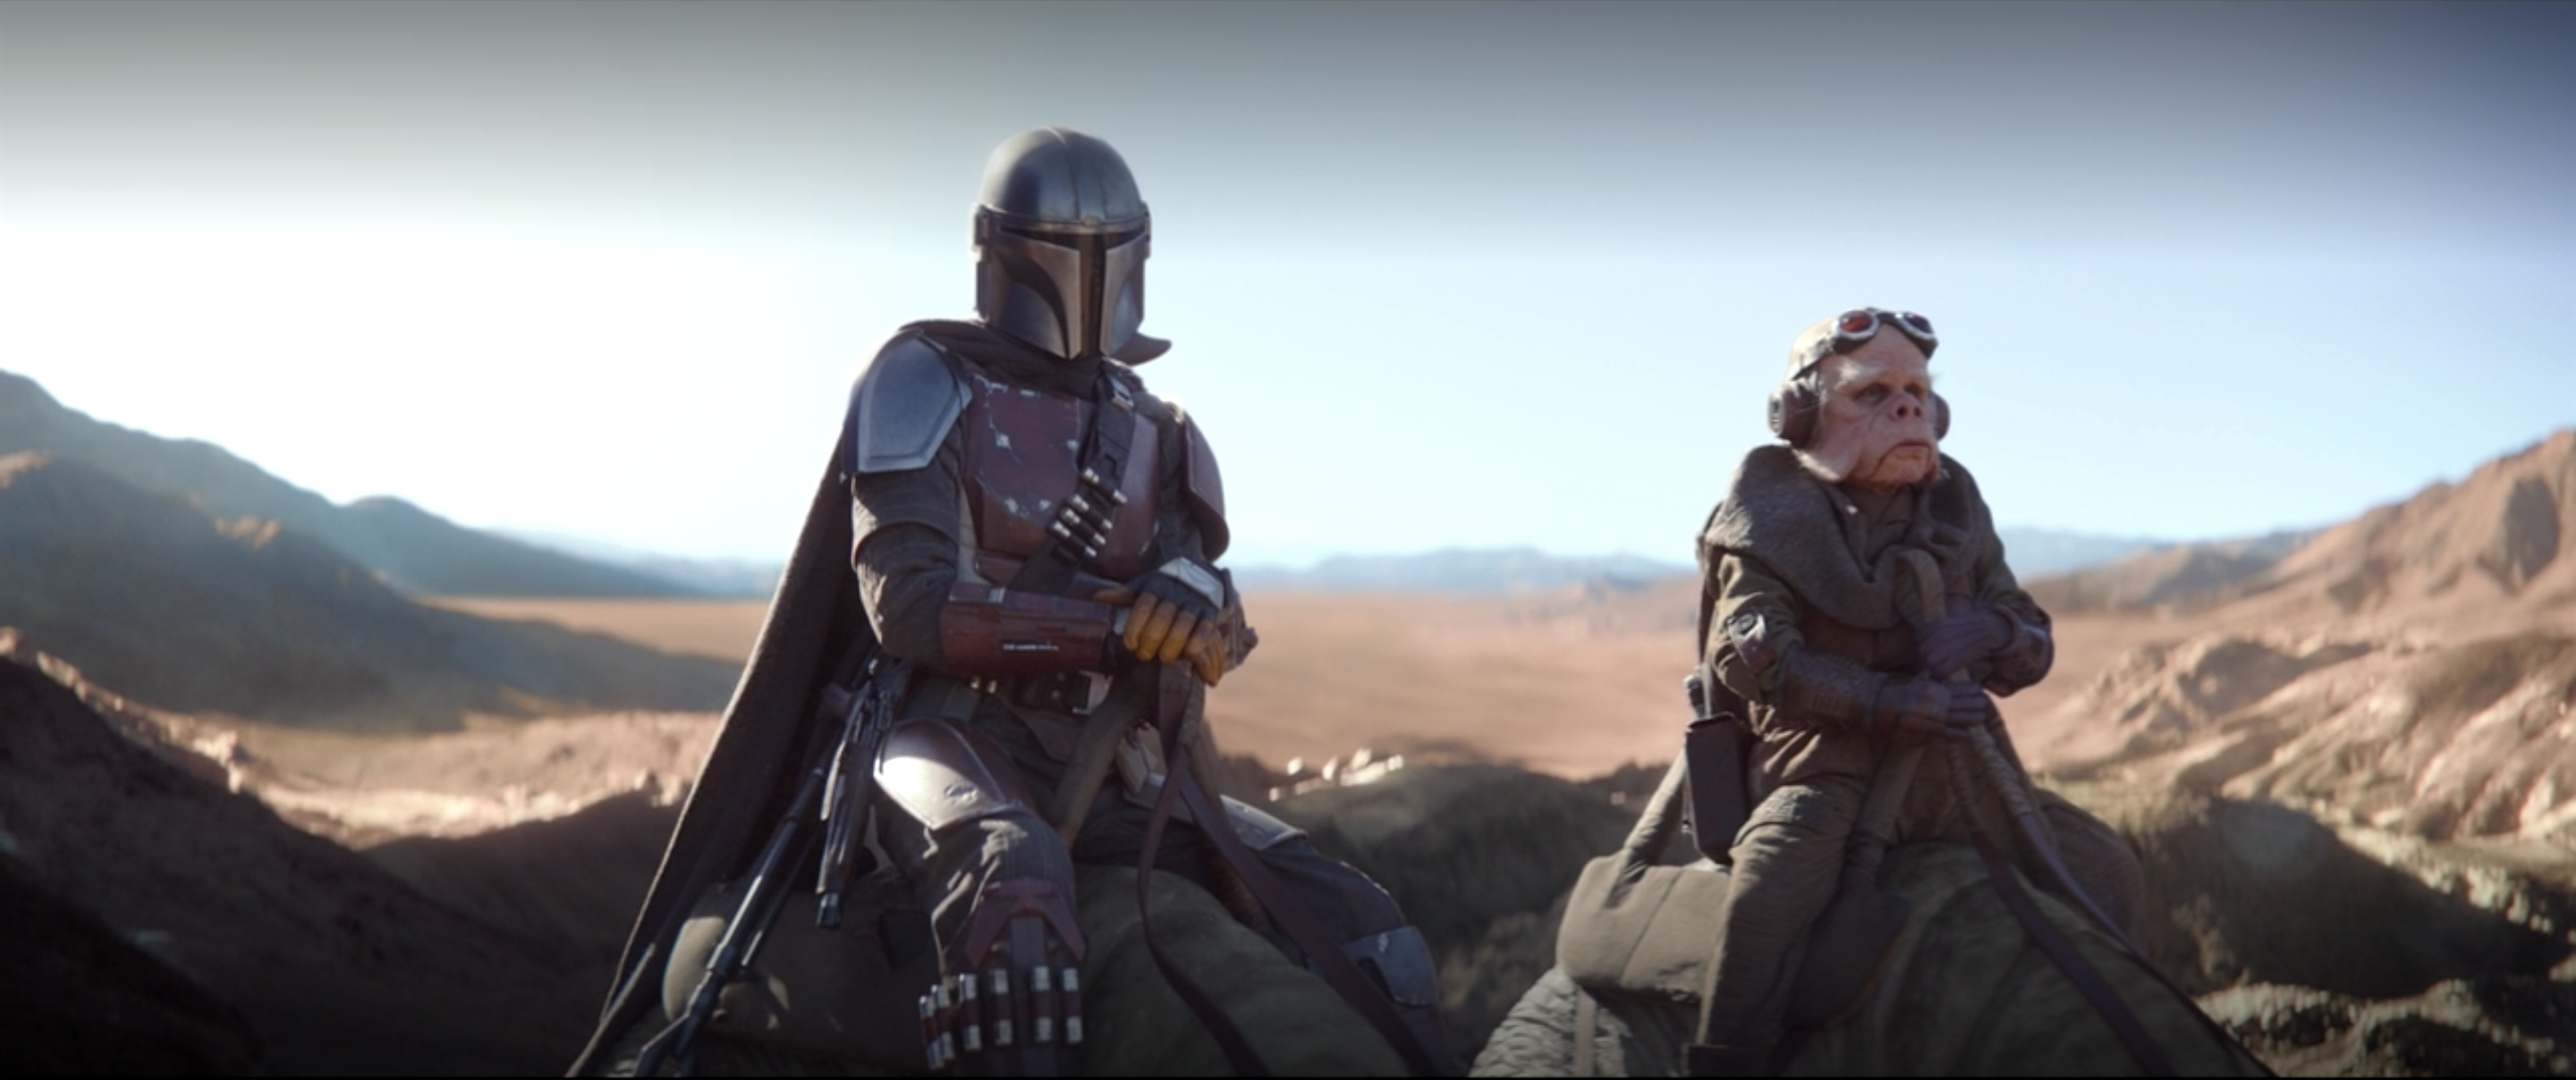 So, What is a Mandalorian, Anyway?